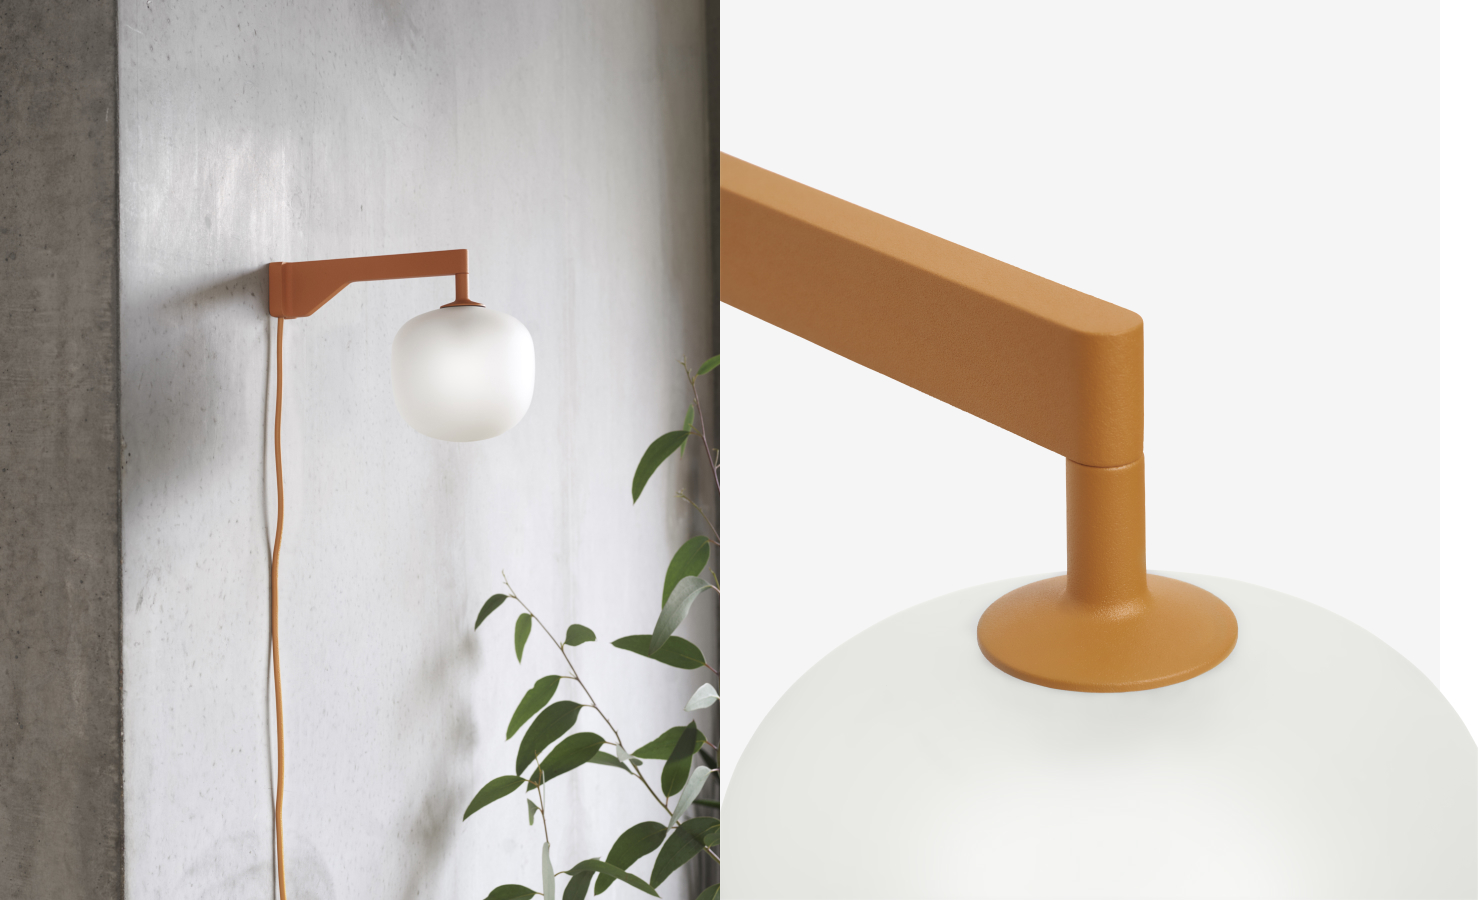 Wall light with orange stem and opaque glass sphere